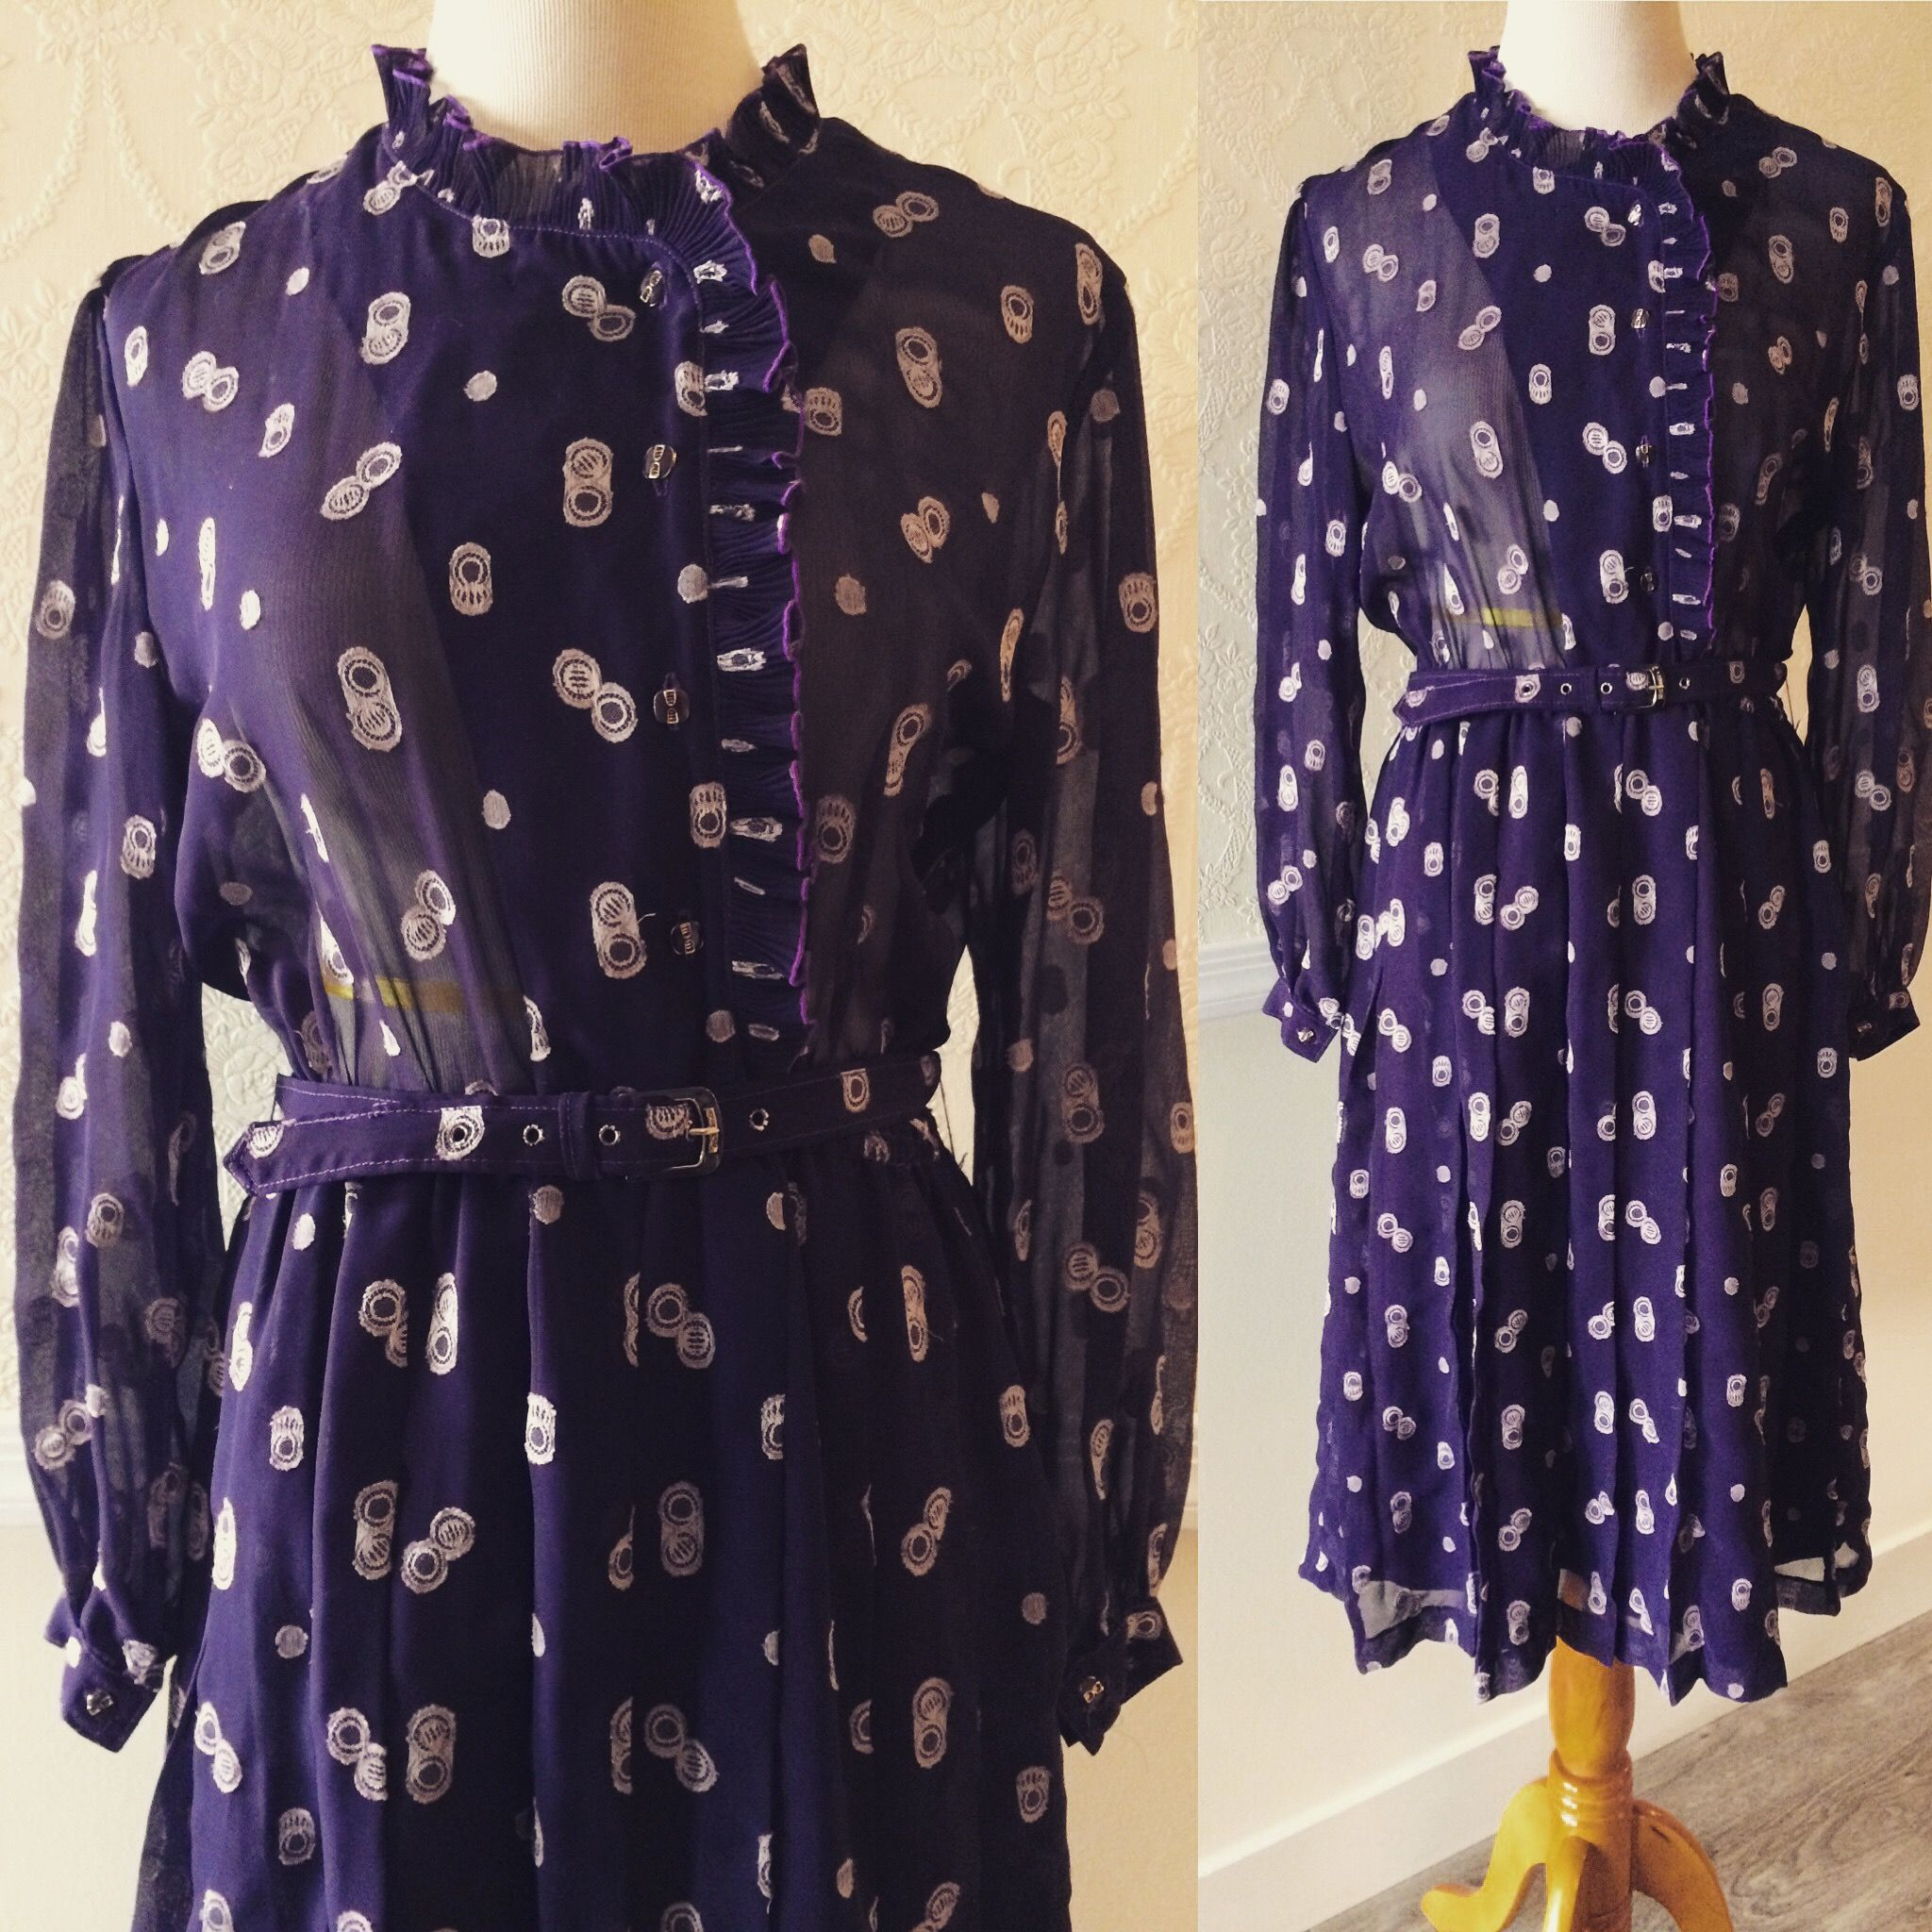 Purple sheer/chiffon vintage style long-sleeve dress~clasps at high neck. buttoned sleeves. belted waist ~ size medium/large $40.00 + shipping💐